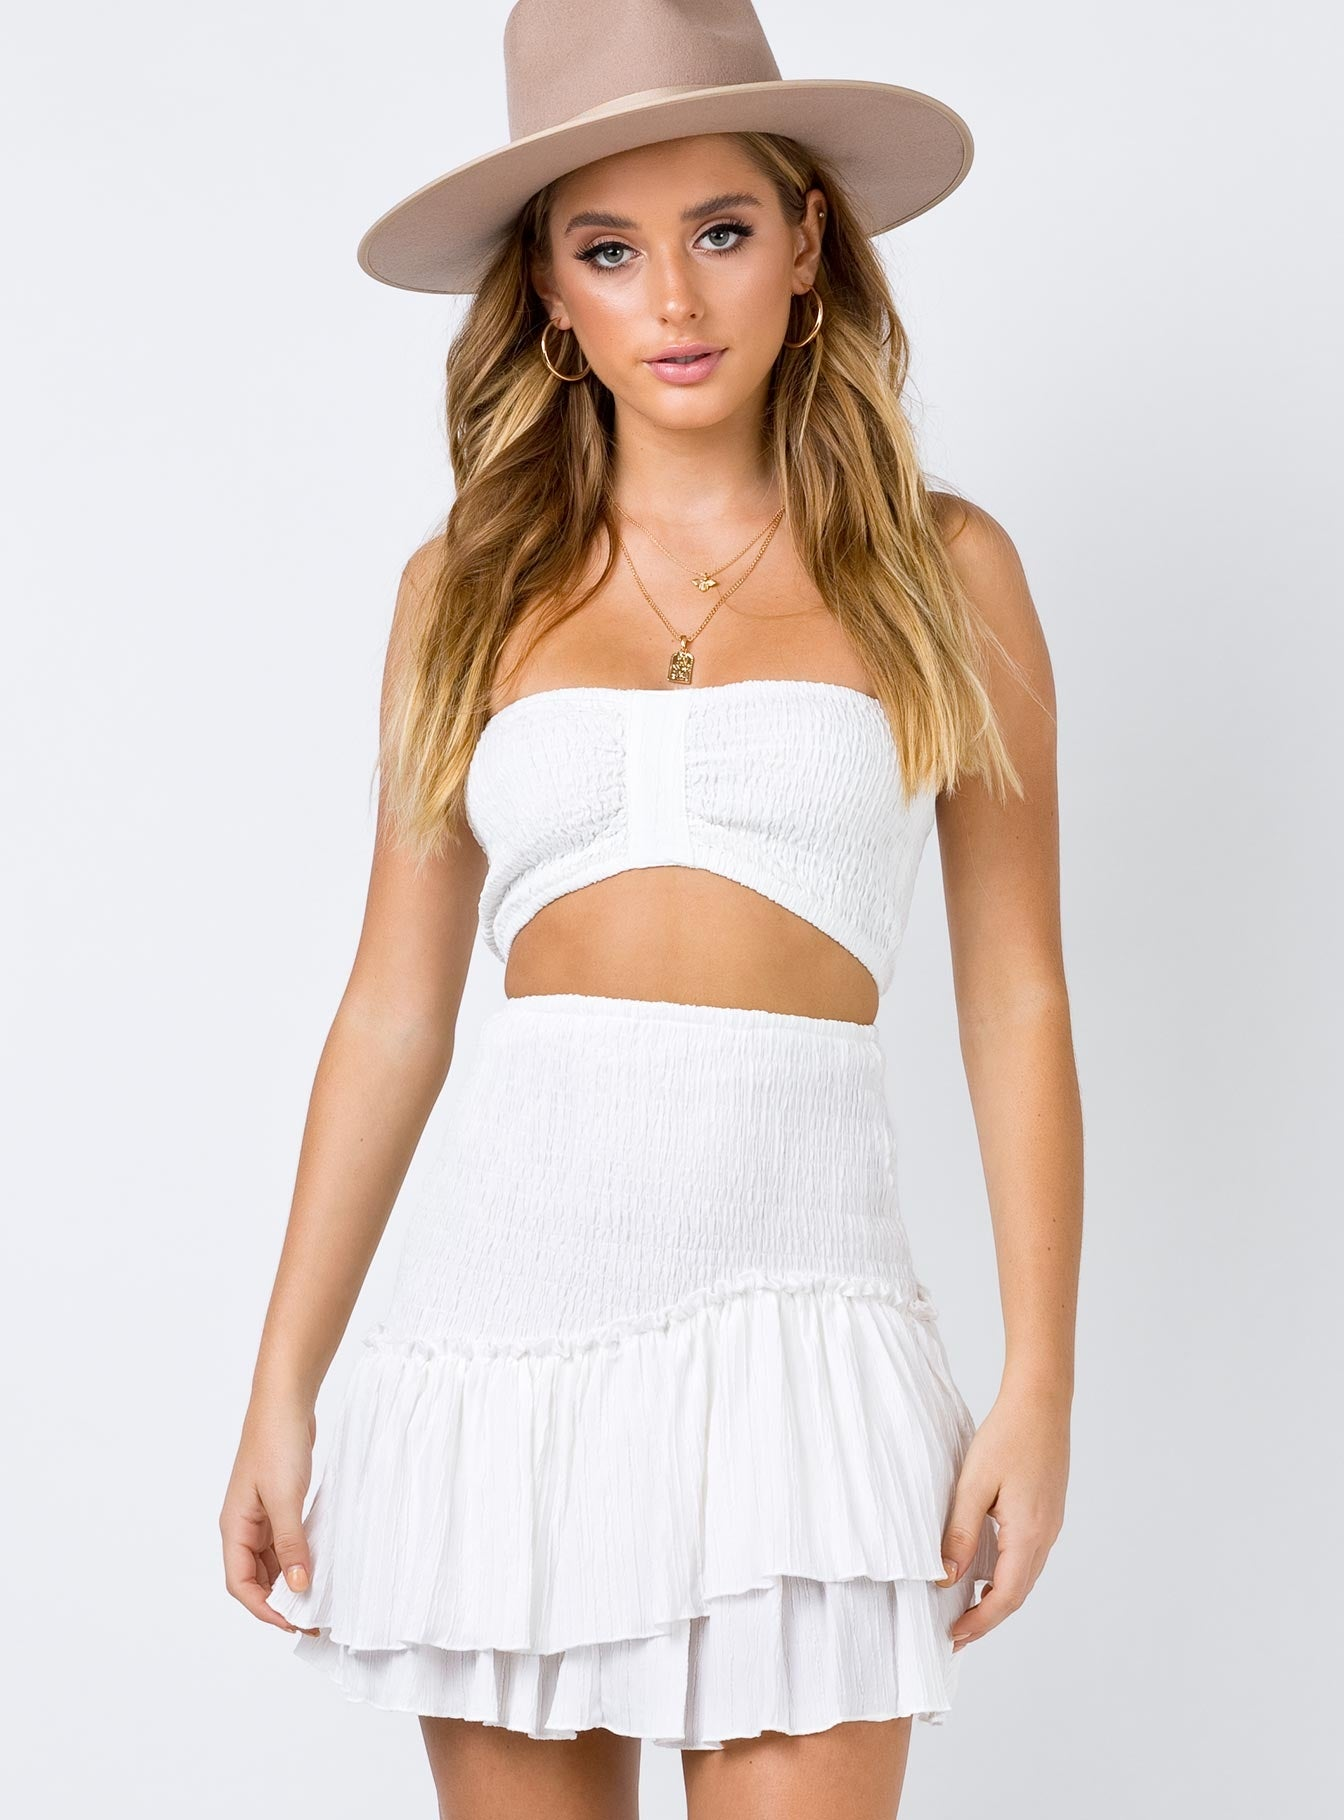 The Alaska Mini Skirt White